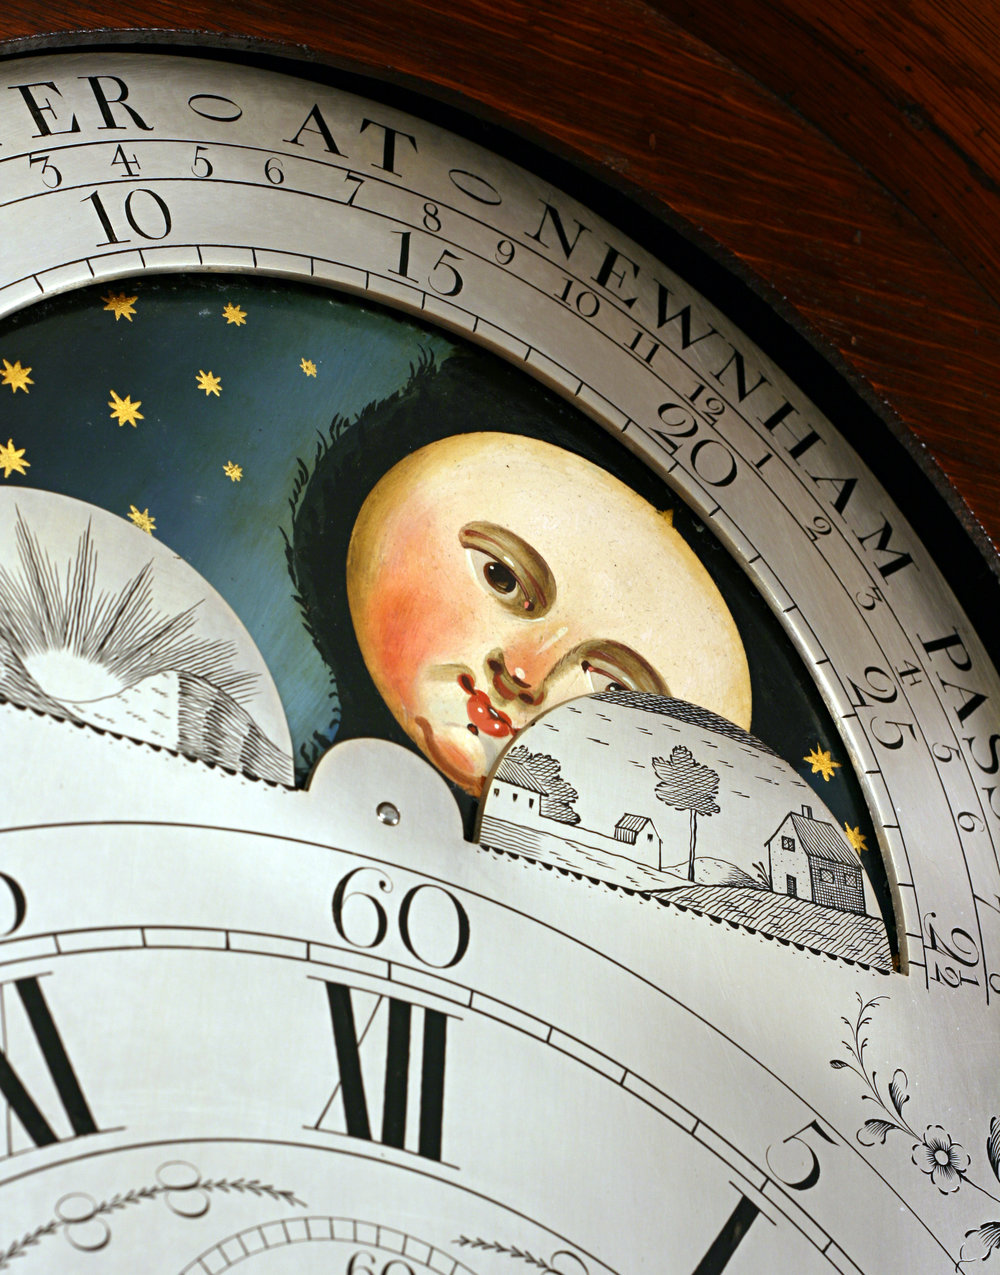 An 18th Century British Longcase clock with traditional moonphase aperture. Photo credit: British-Antiqueclocks.com